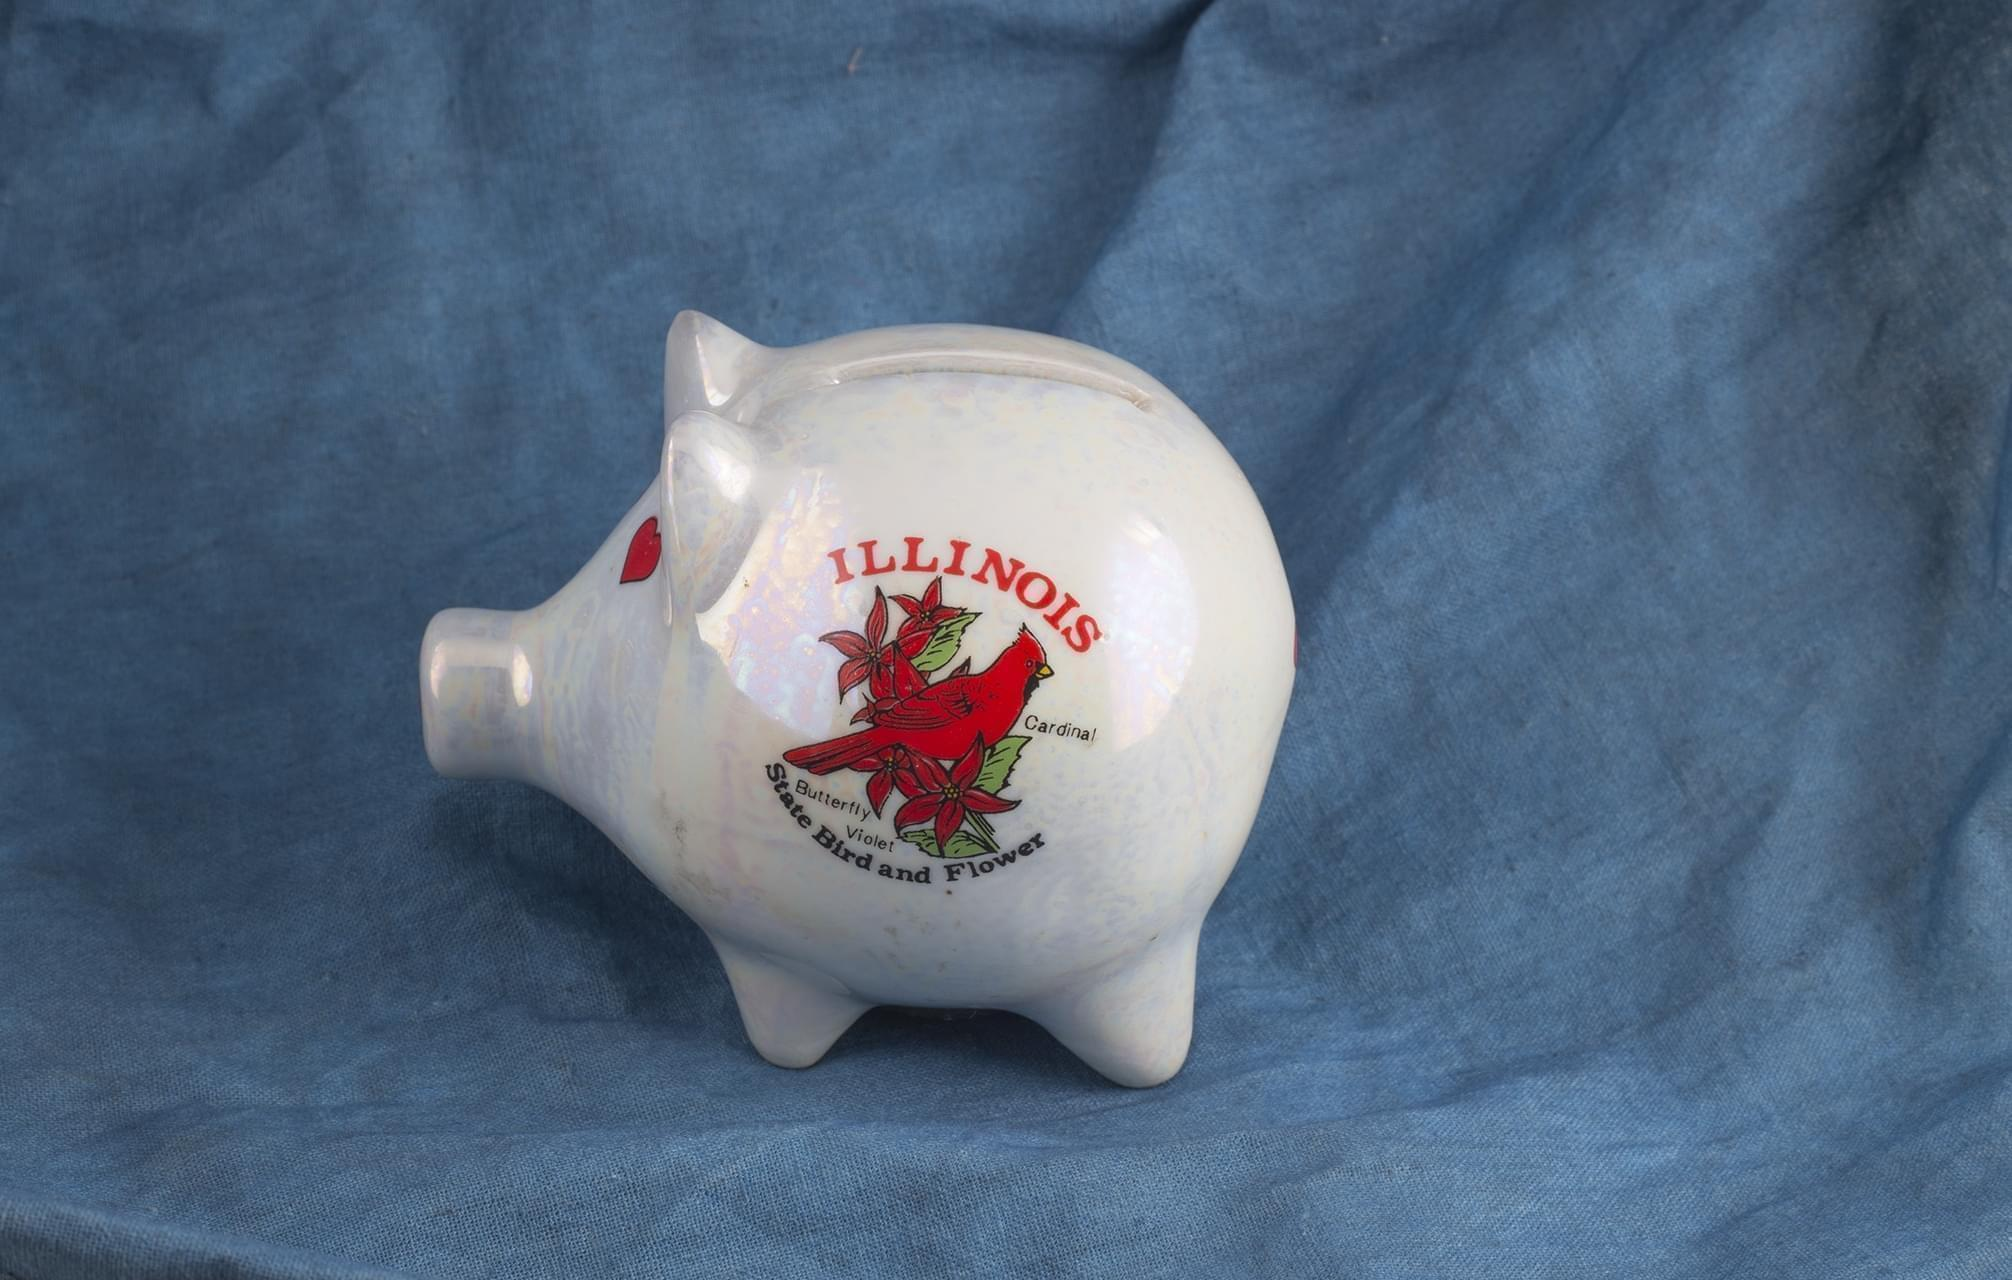 Piggy bank with Illinois state bird and flower